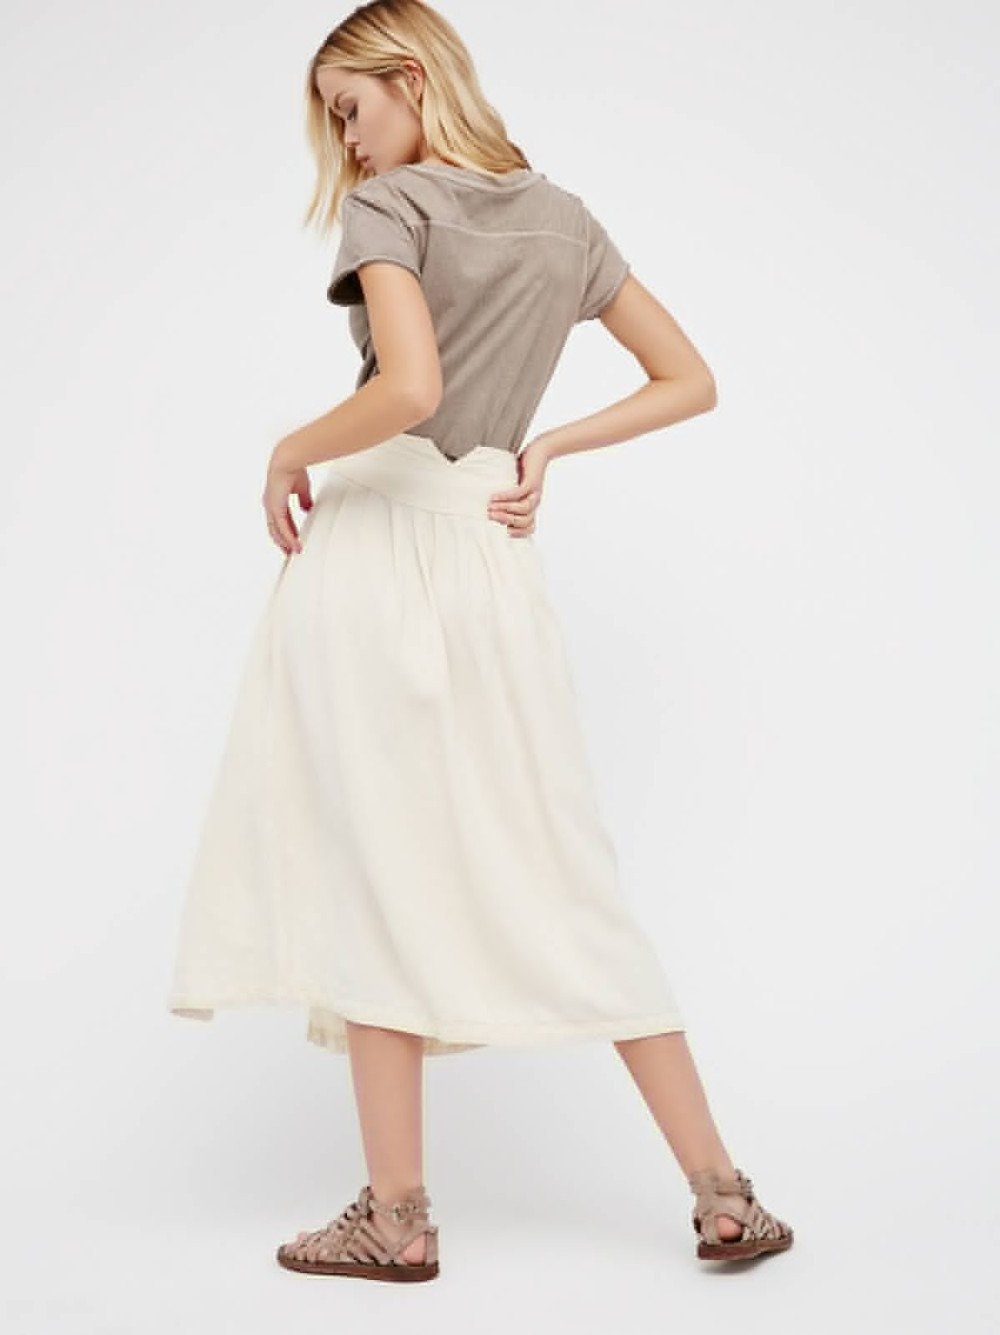 New Stylish Women's Fashion A-Line Loose Stroll Skirt